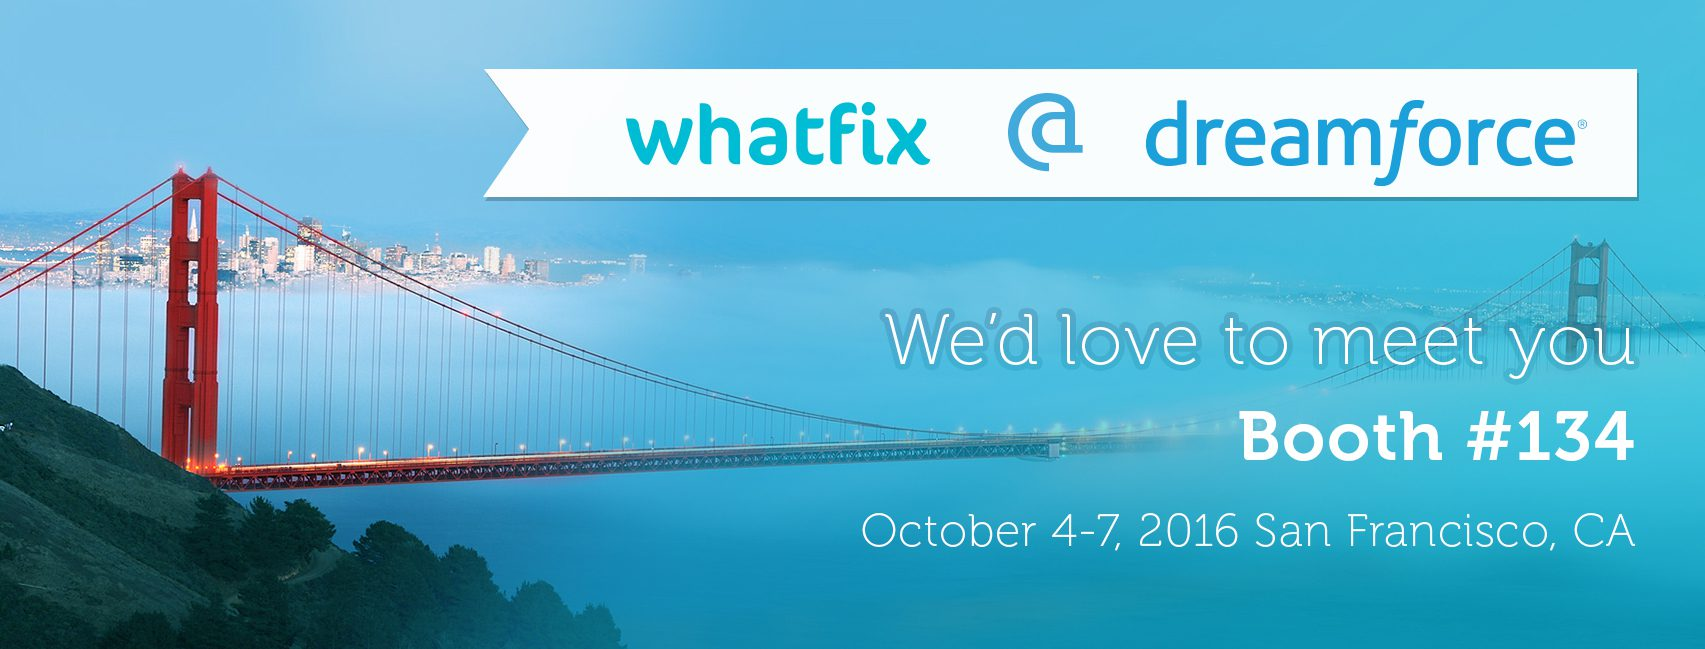 Meet Whatfix at Dreamforce 2016 on booth number 134